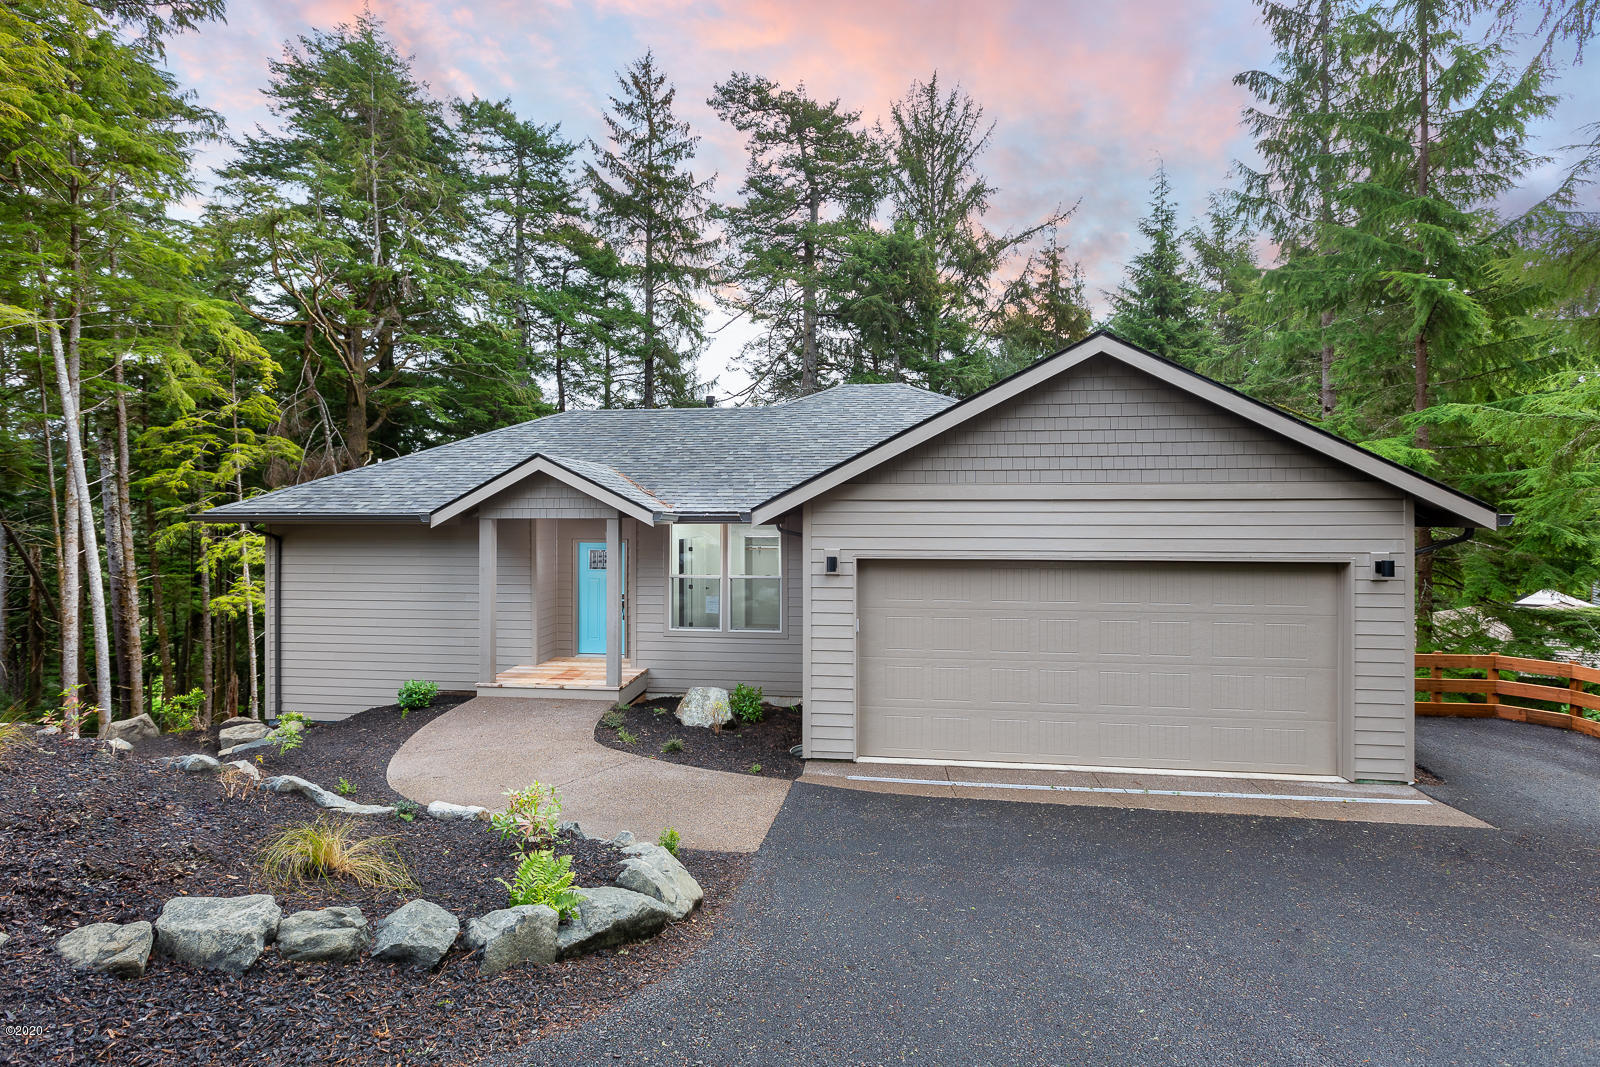 15 Big Tree Rd, Gleneden Beach, OR 97388